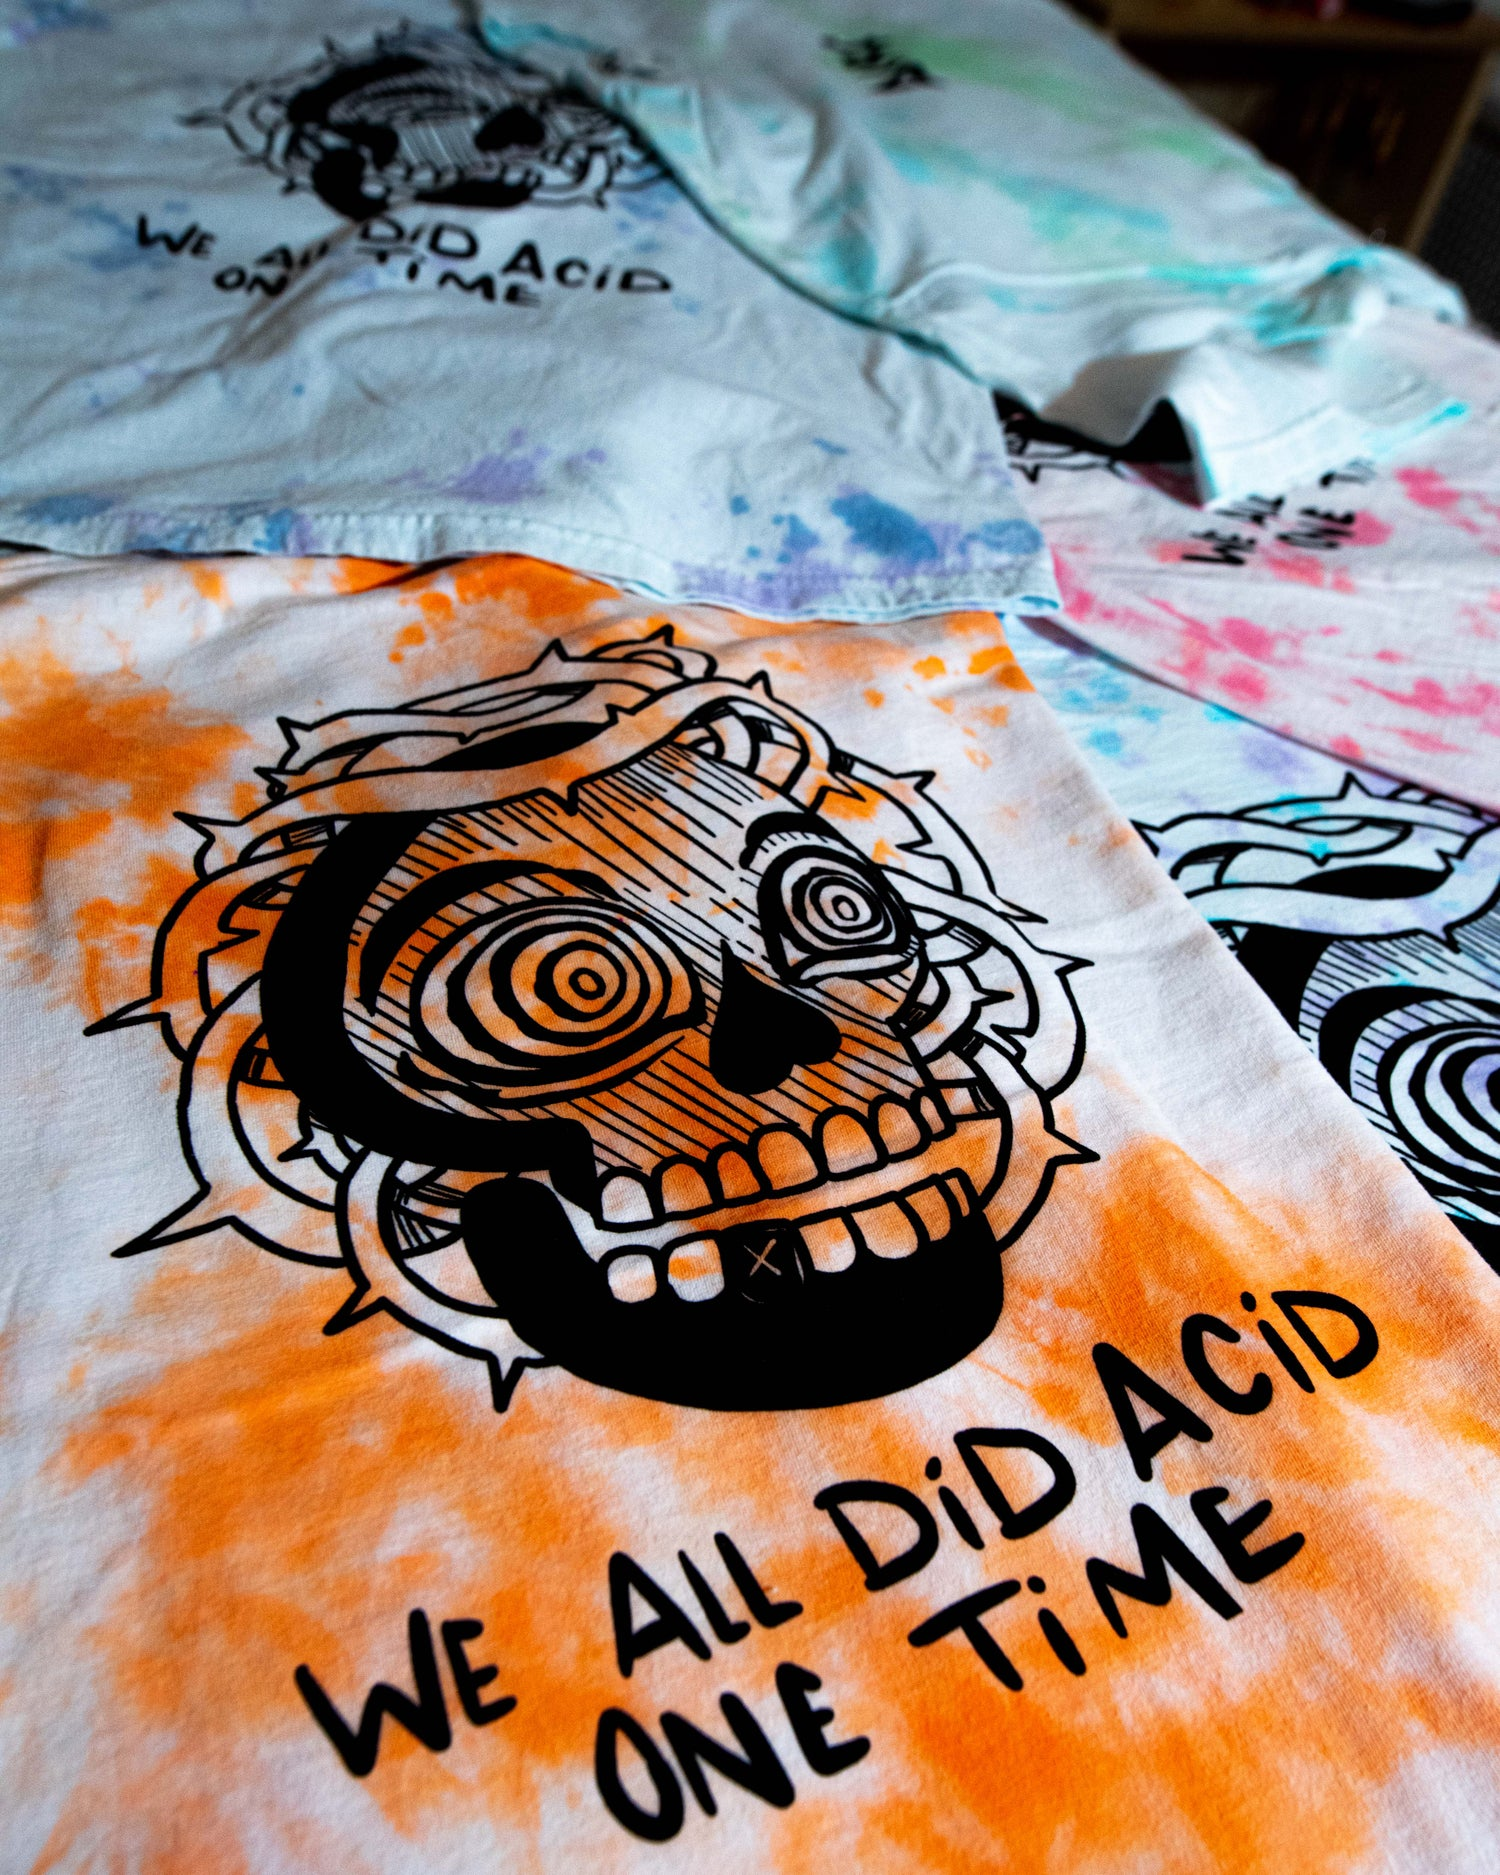 Image of Acidddddd - SOLD OUT